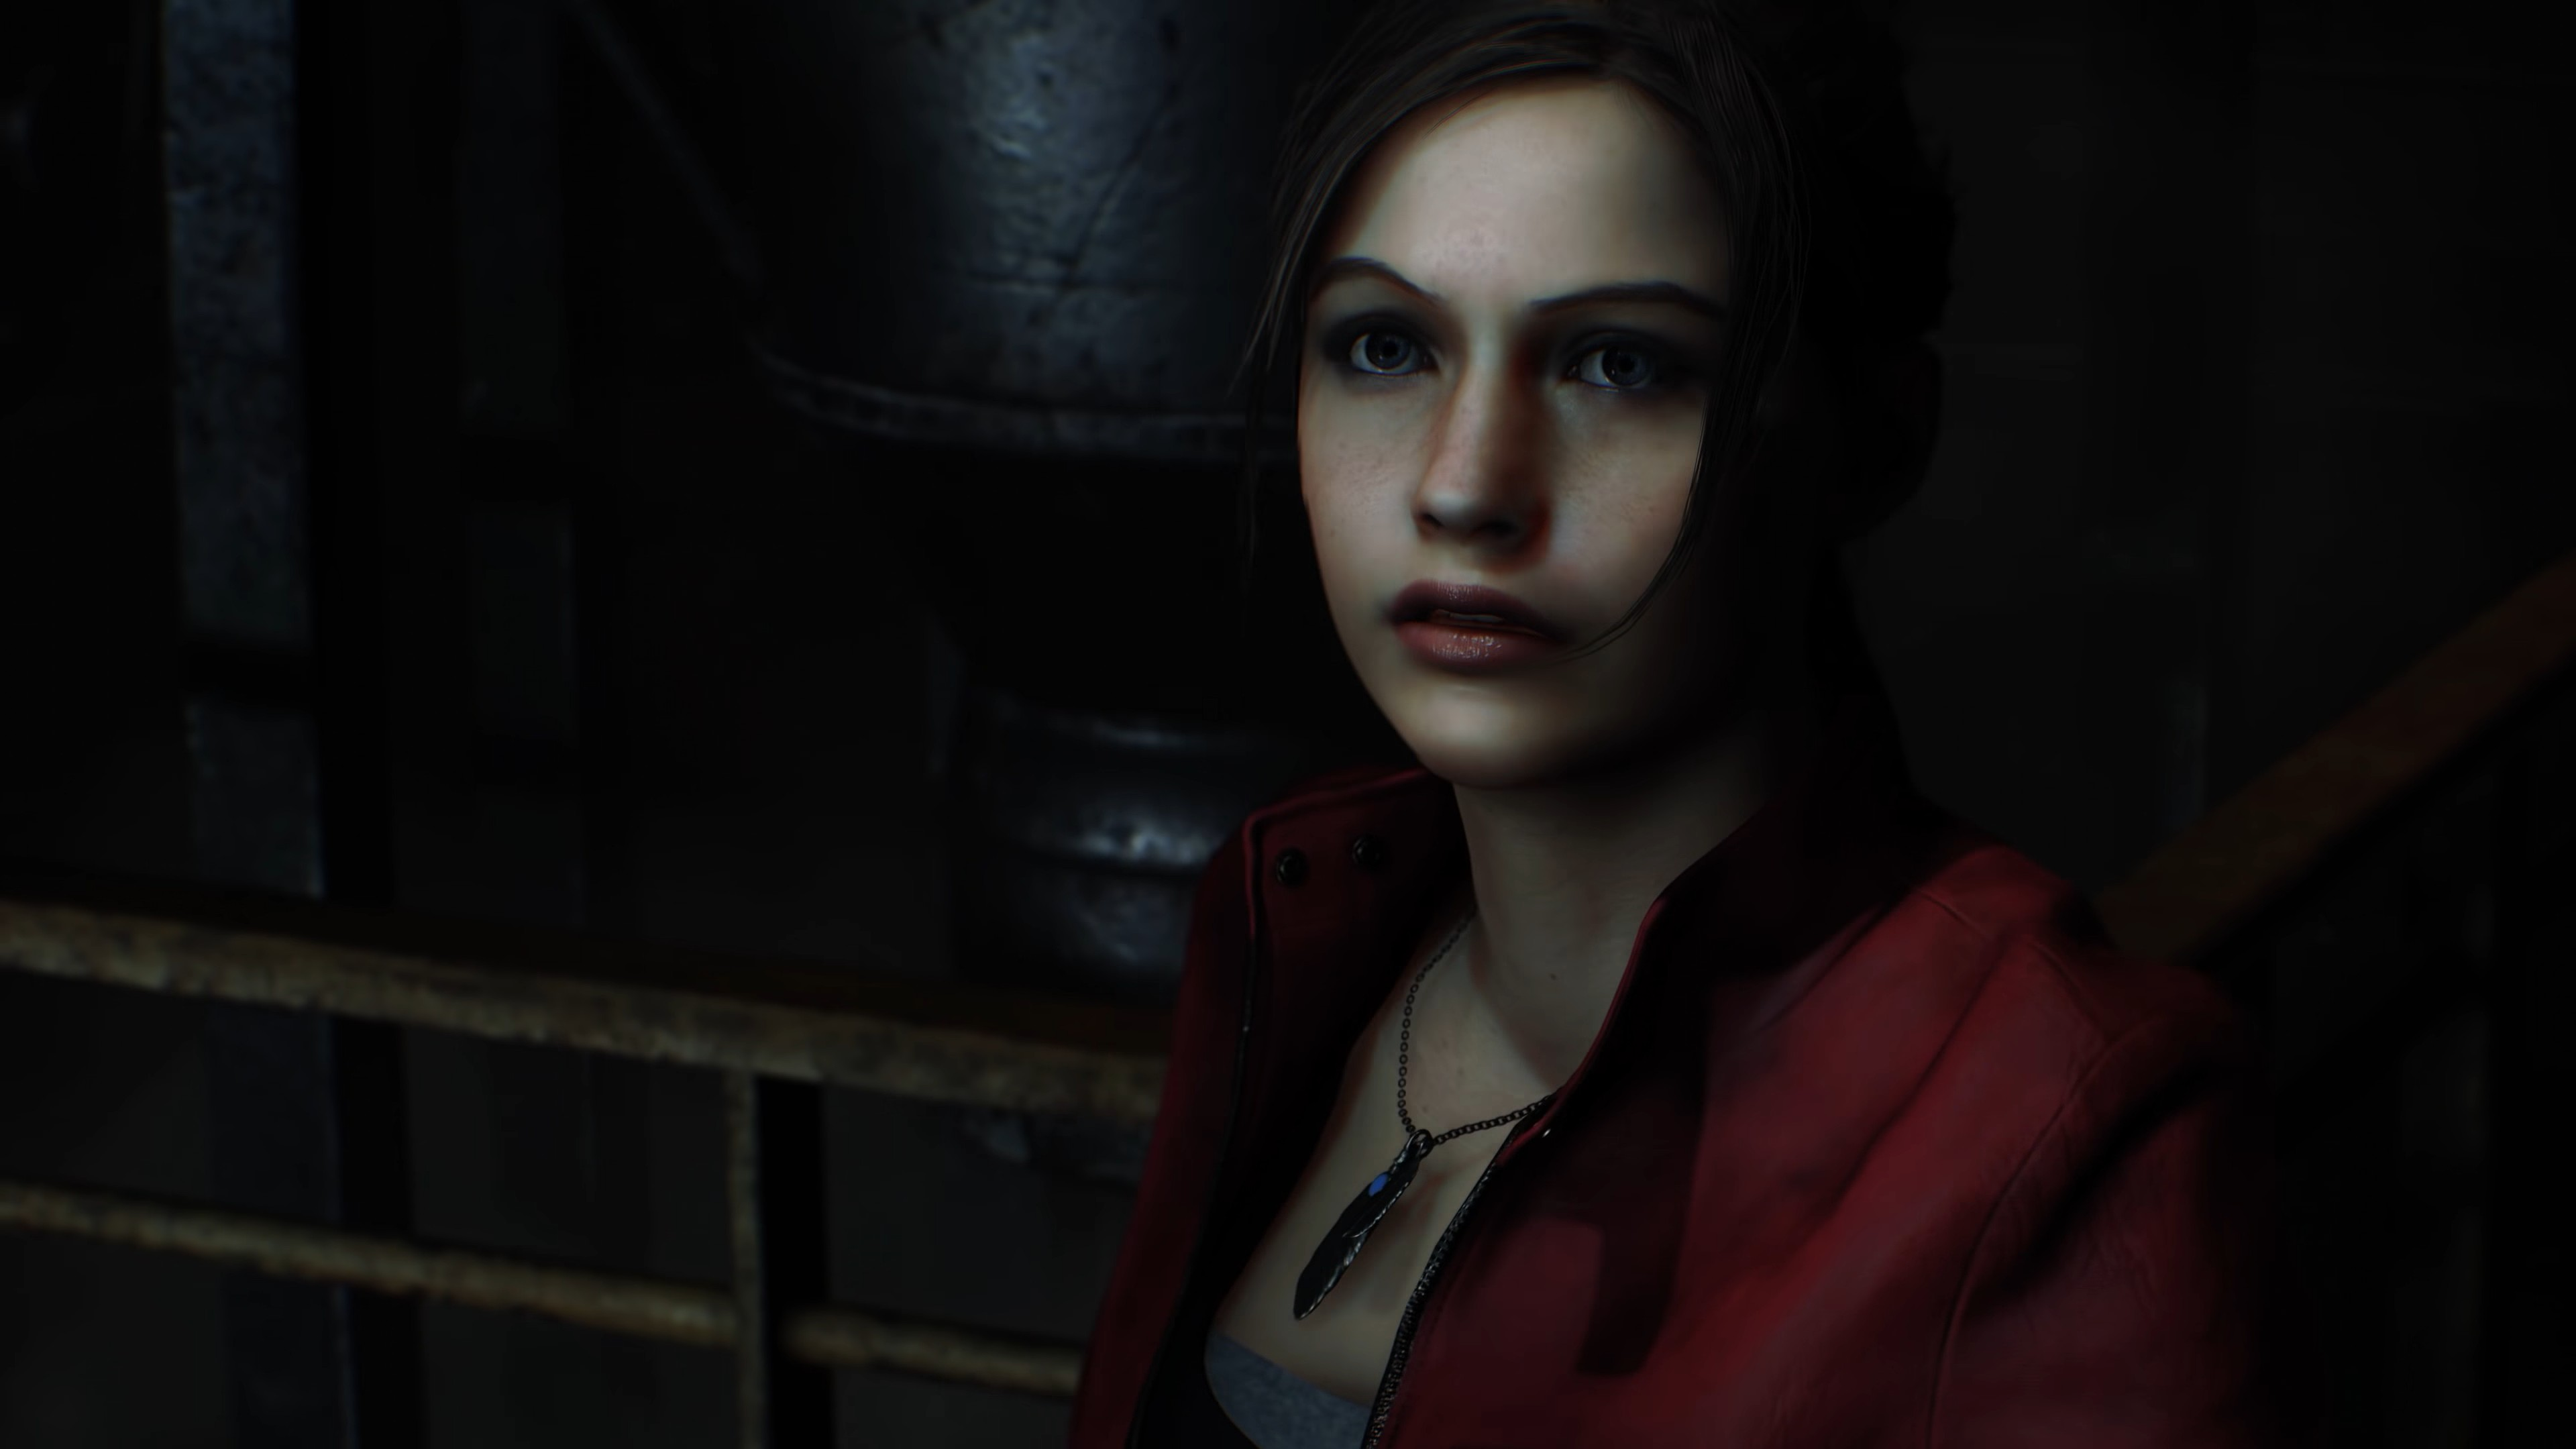 1920x1080 Claire Redfield Resident Evil 2 Laptop Full Hd 1080p Hd